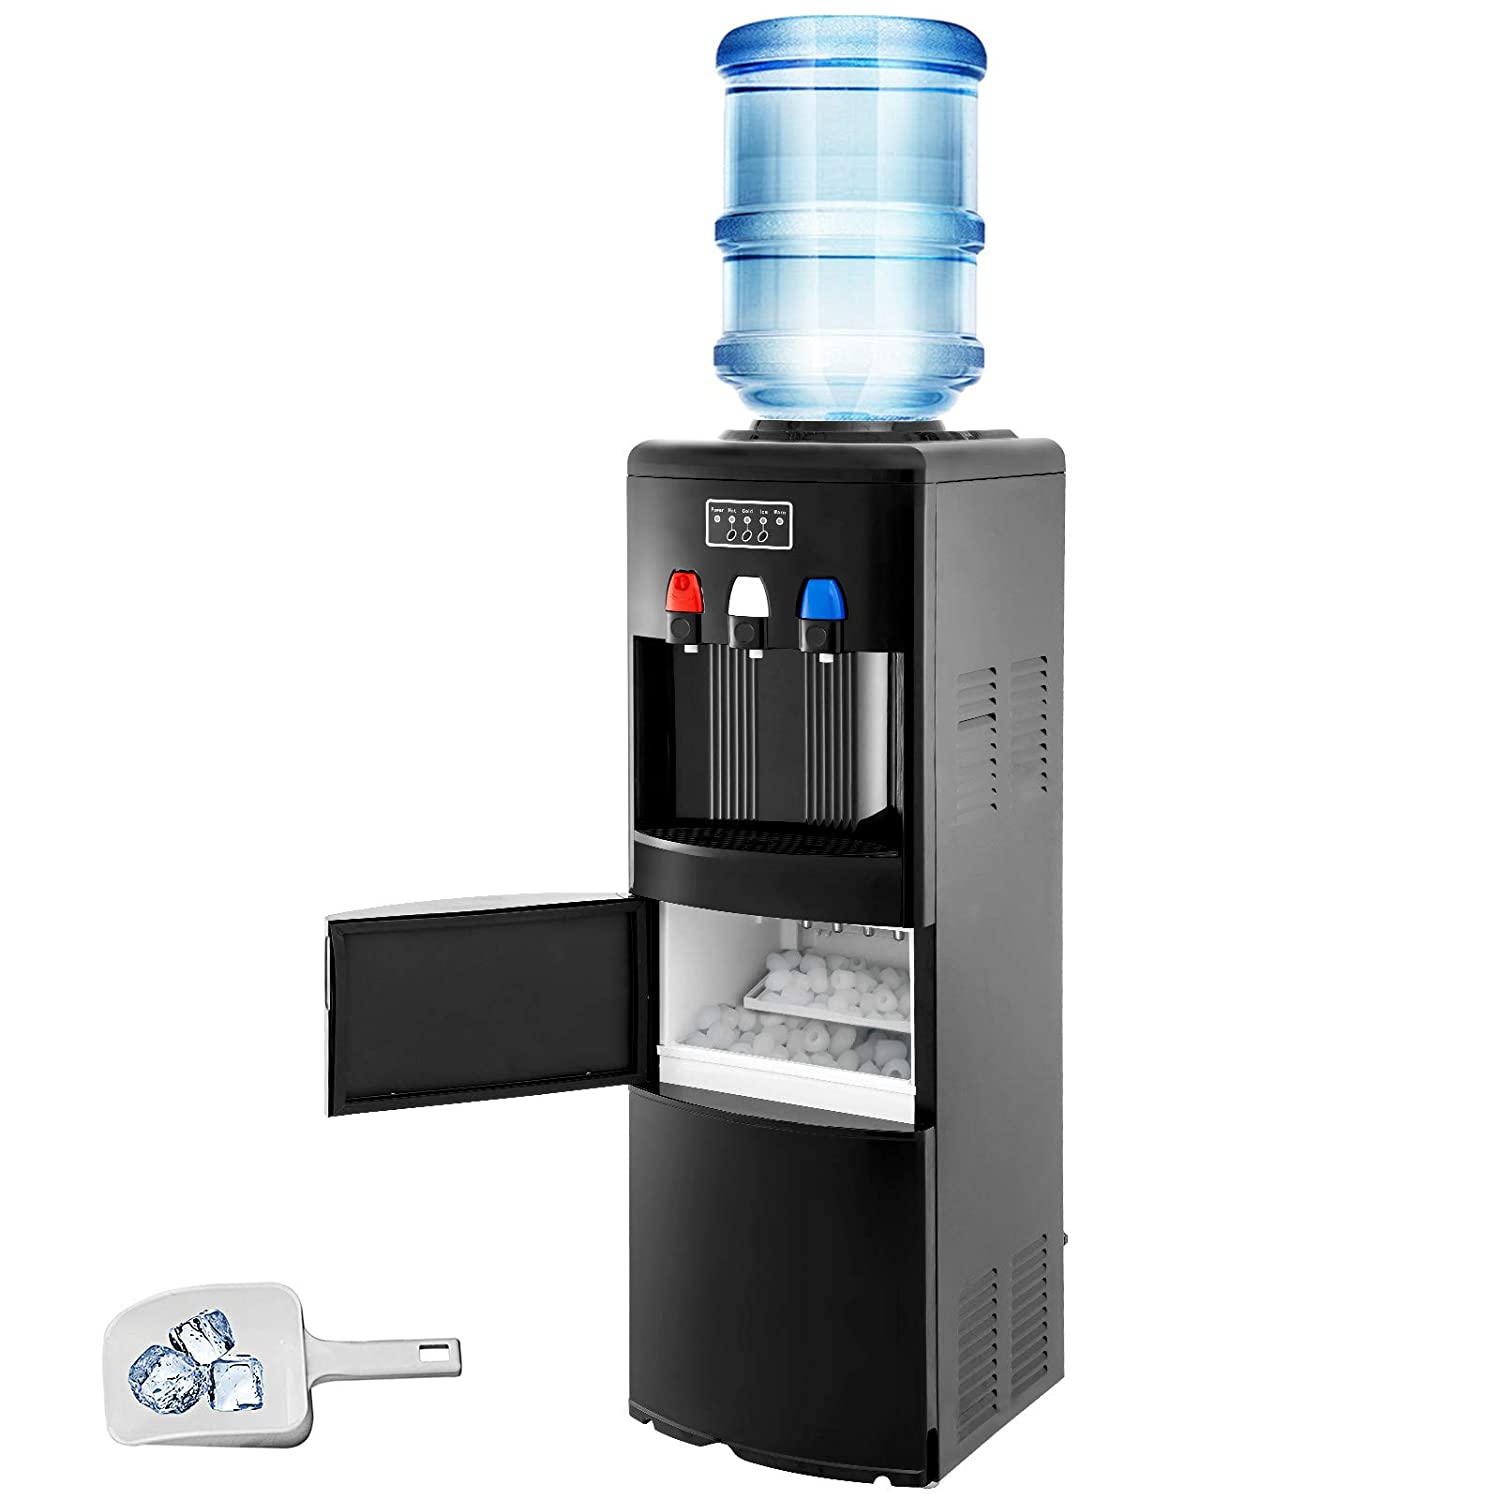 VBENLEM 2 in 1 Black Water Dispenser with Built in Ice Maker Water Cooler Machine Hot and Cold Top Loading 3 to 5 Gallon Bottle Electric Hot Cold Water Cooler Dispenser